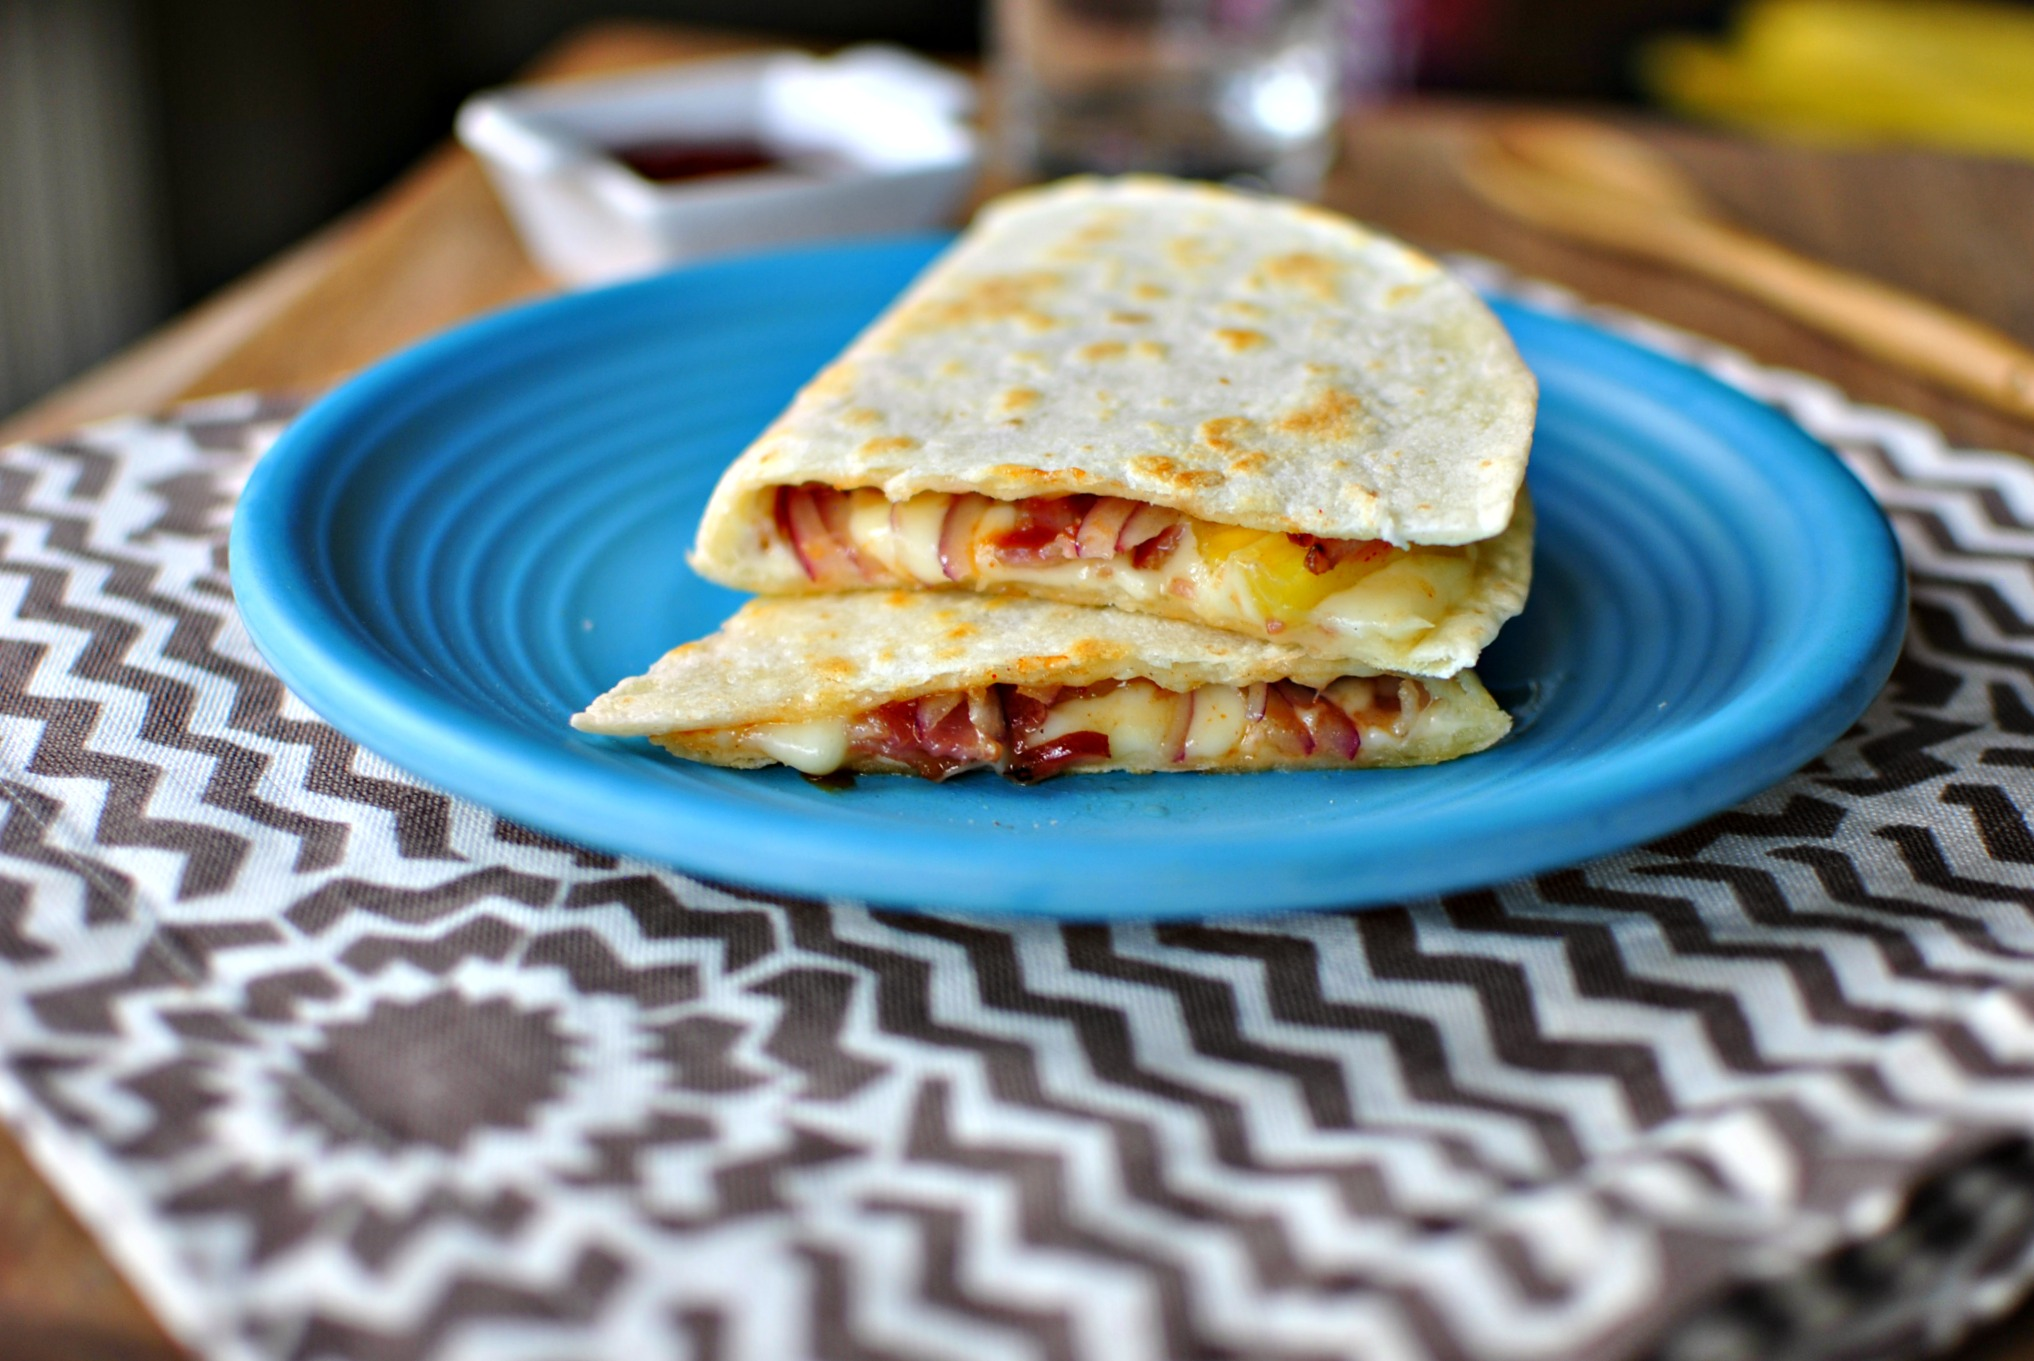 Barbecue Bacon and Pineapple Quesadilla4